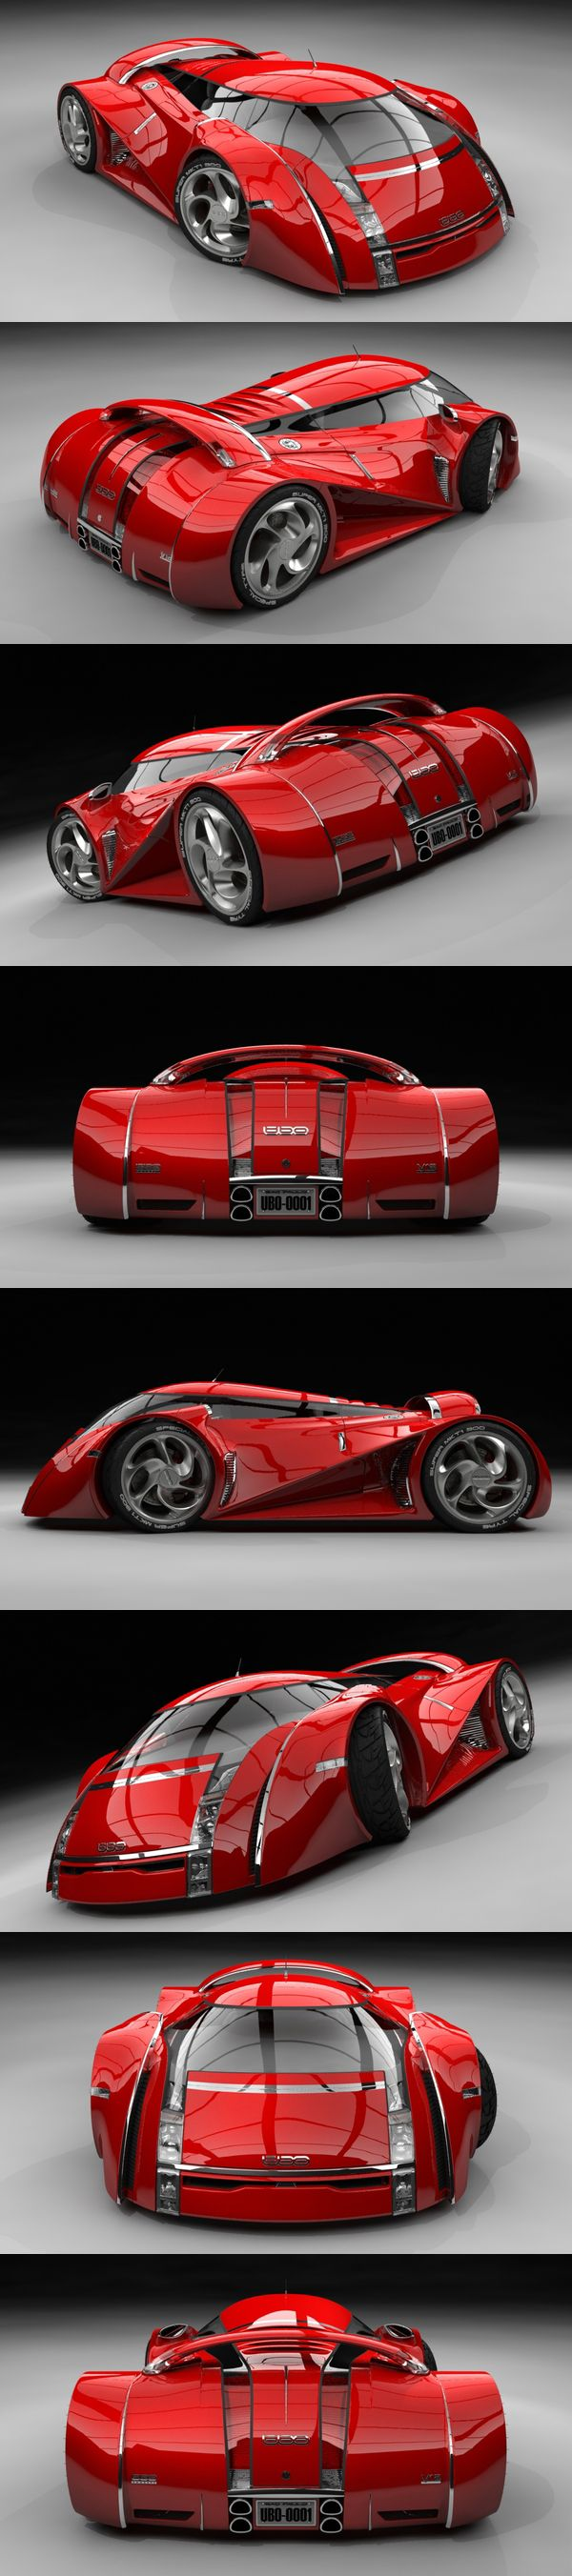 UBO - Concept Car Rouge Interested in owning one of these? http://MultiLevelProfits.com